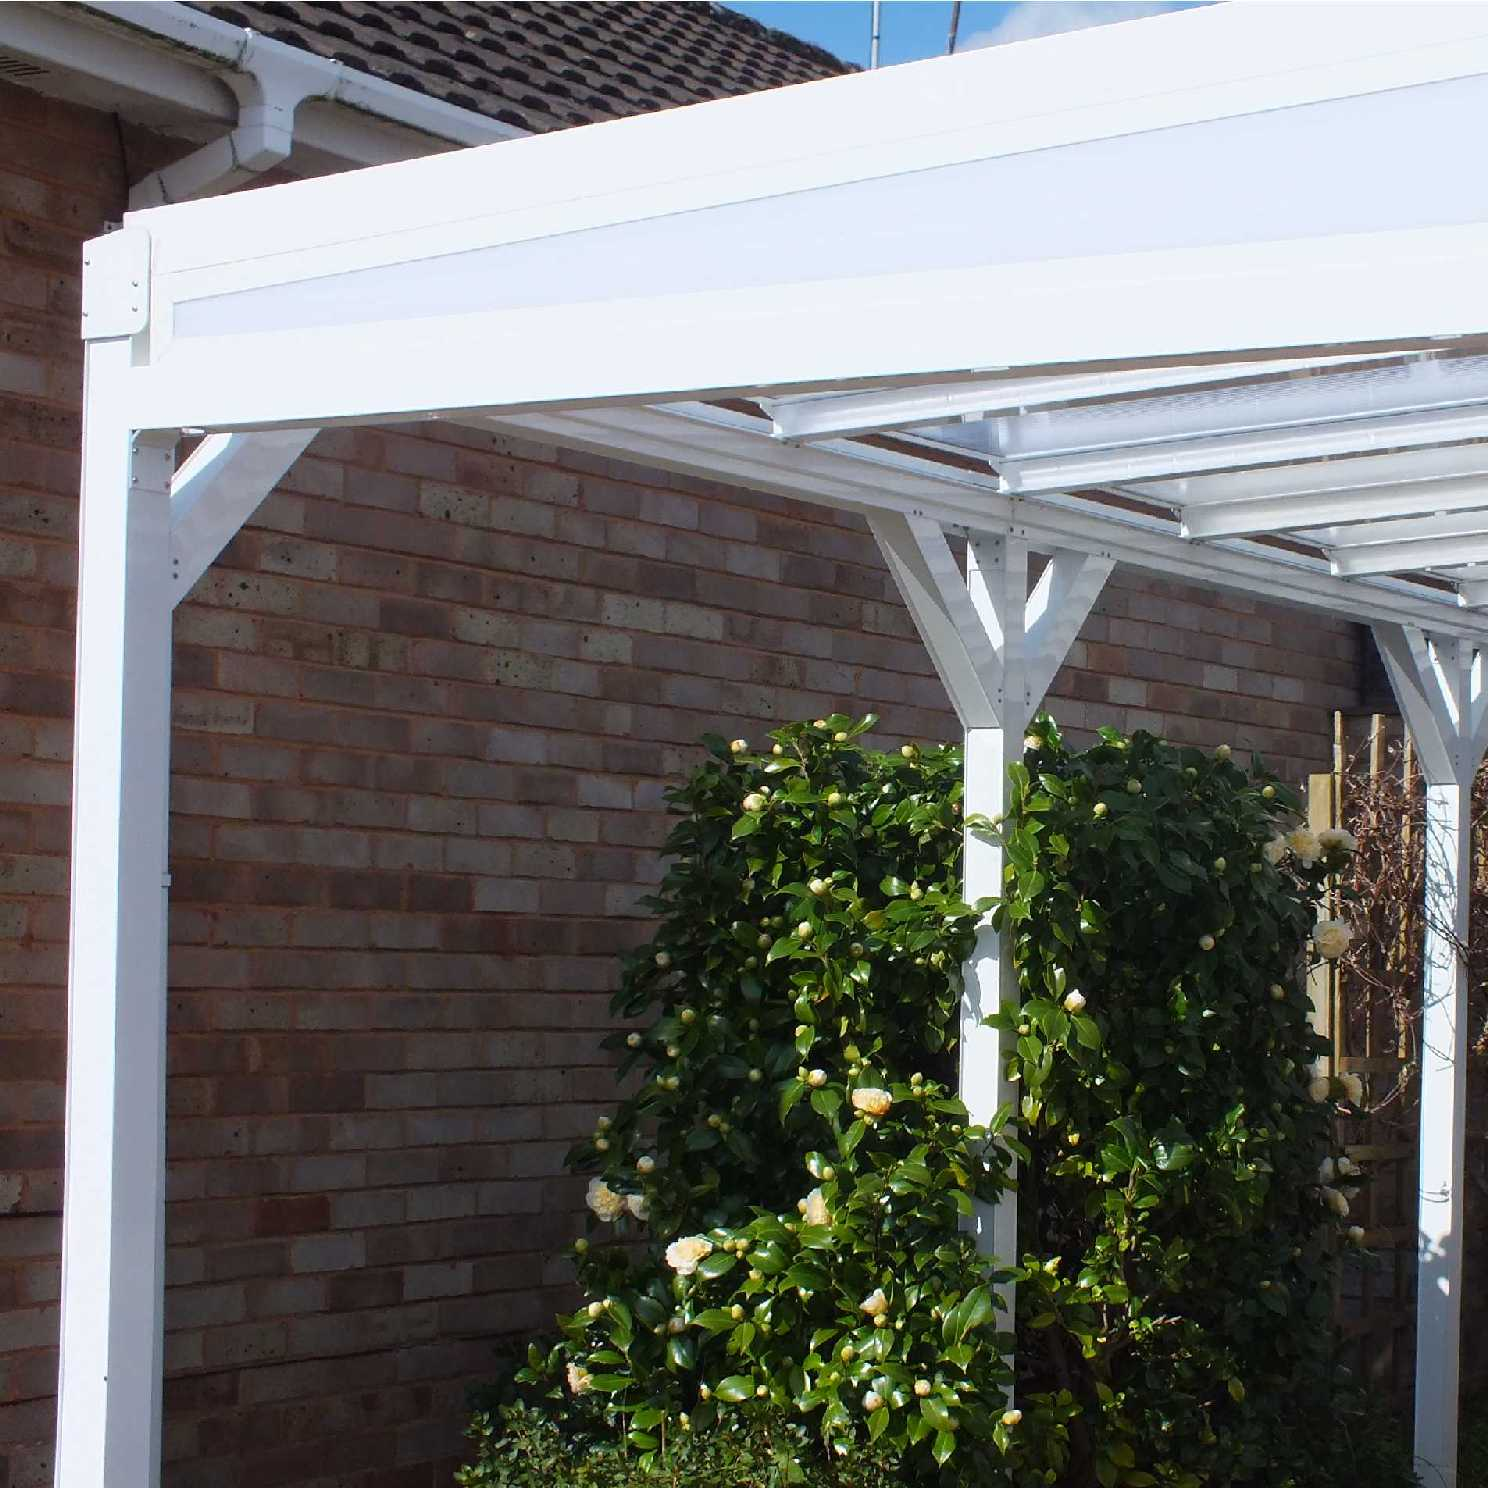 Omega Smart Lean-To Canopy with 16mm Polycarbonate Glazing - 6.3m (W) x 4.0m (P), (4) Supporting Posts from Omega Build